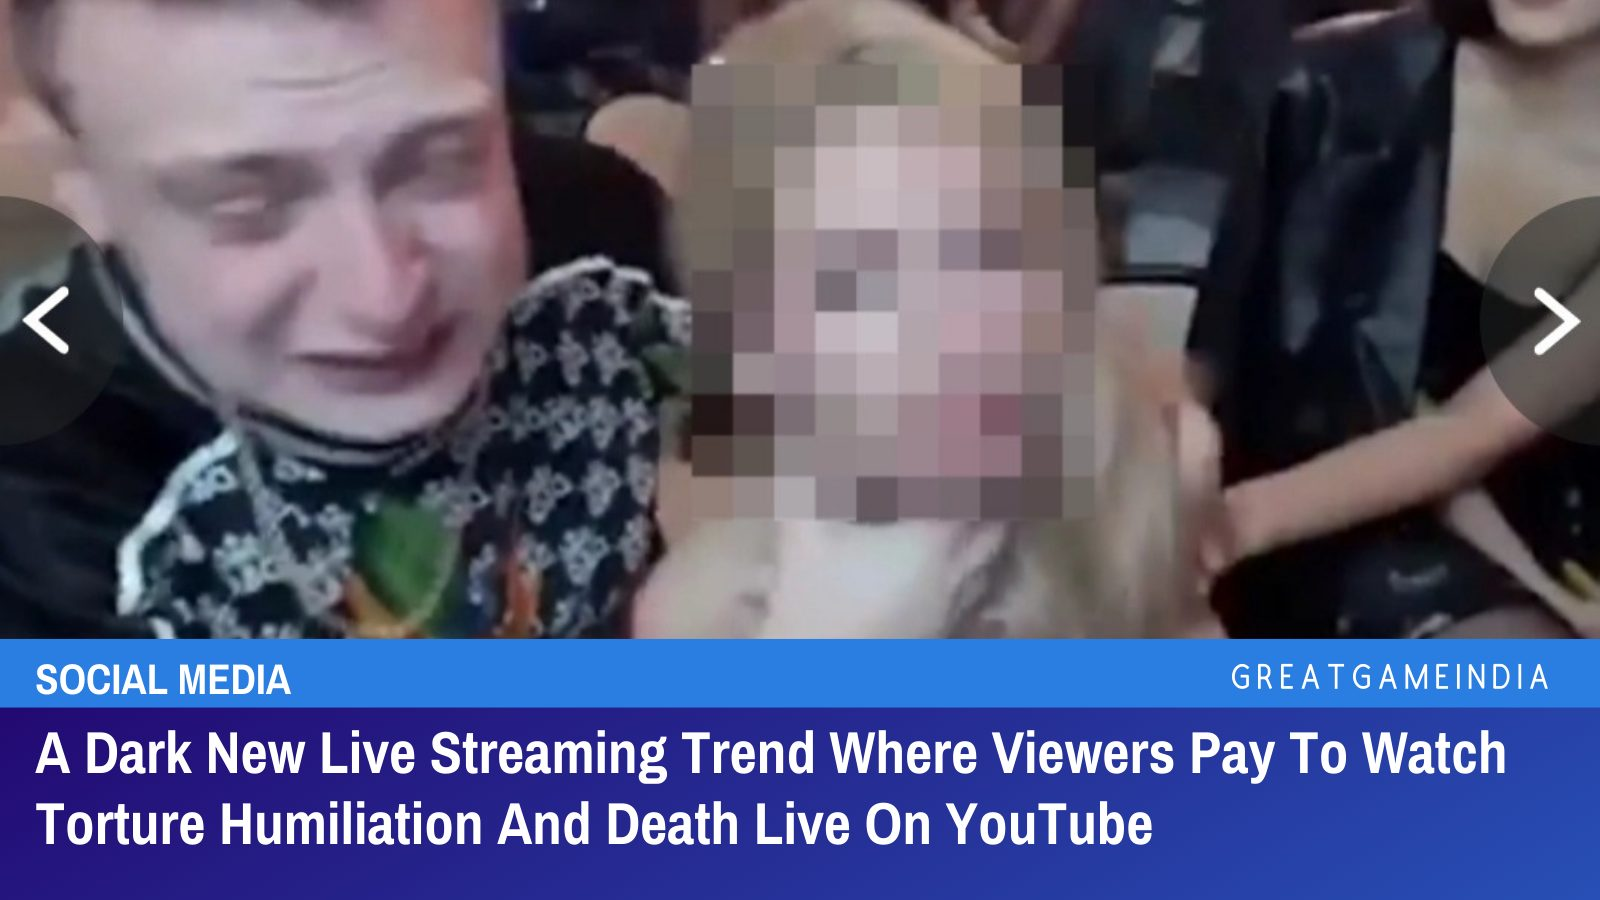 A Dark New Live Streaming Trend Where Viewers Pay To Watch Torture Humiliation And Death Live On YouTube   GreatGameIndia